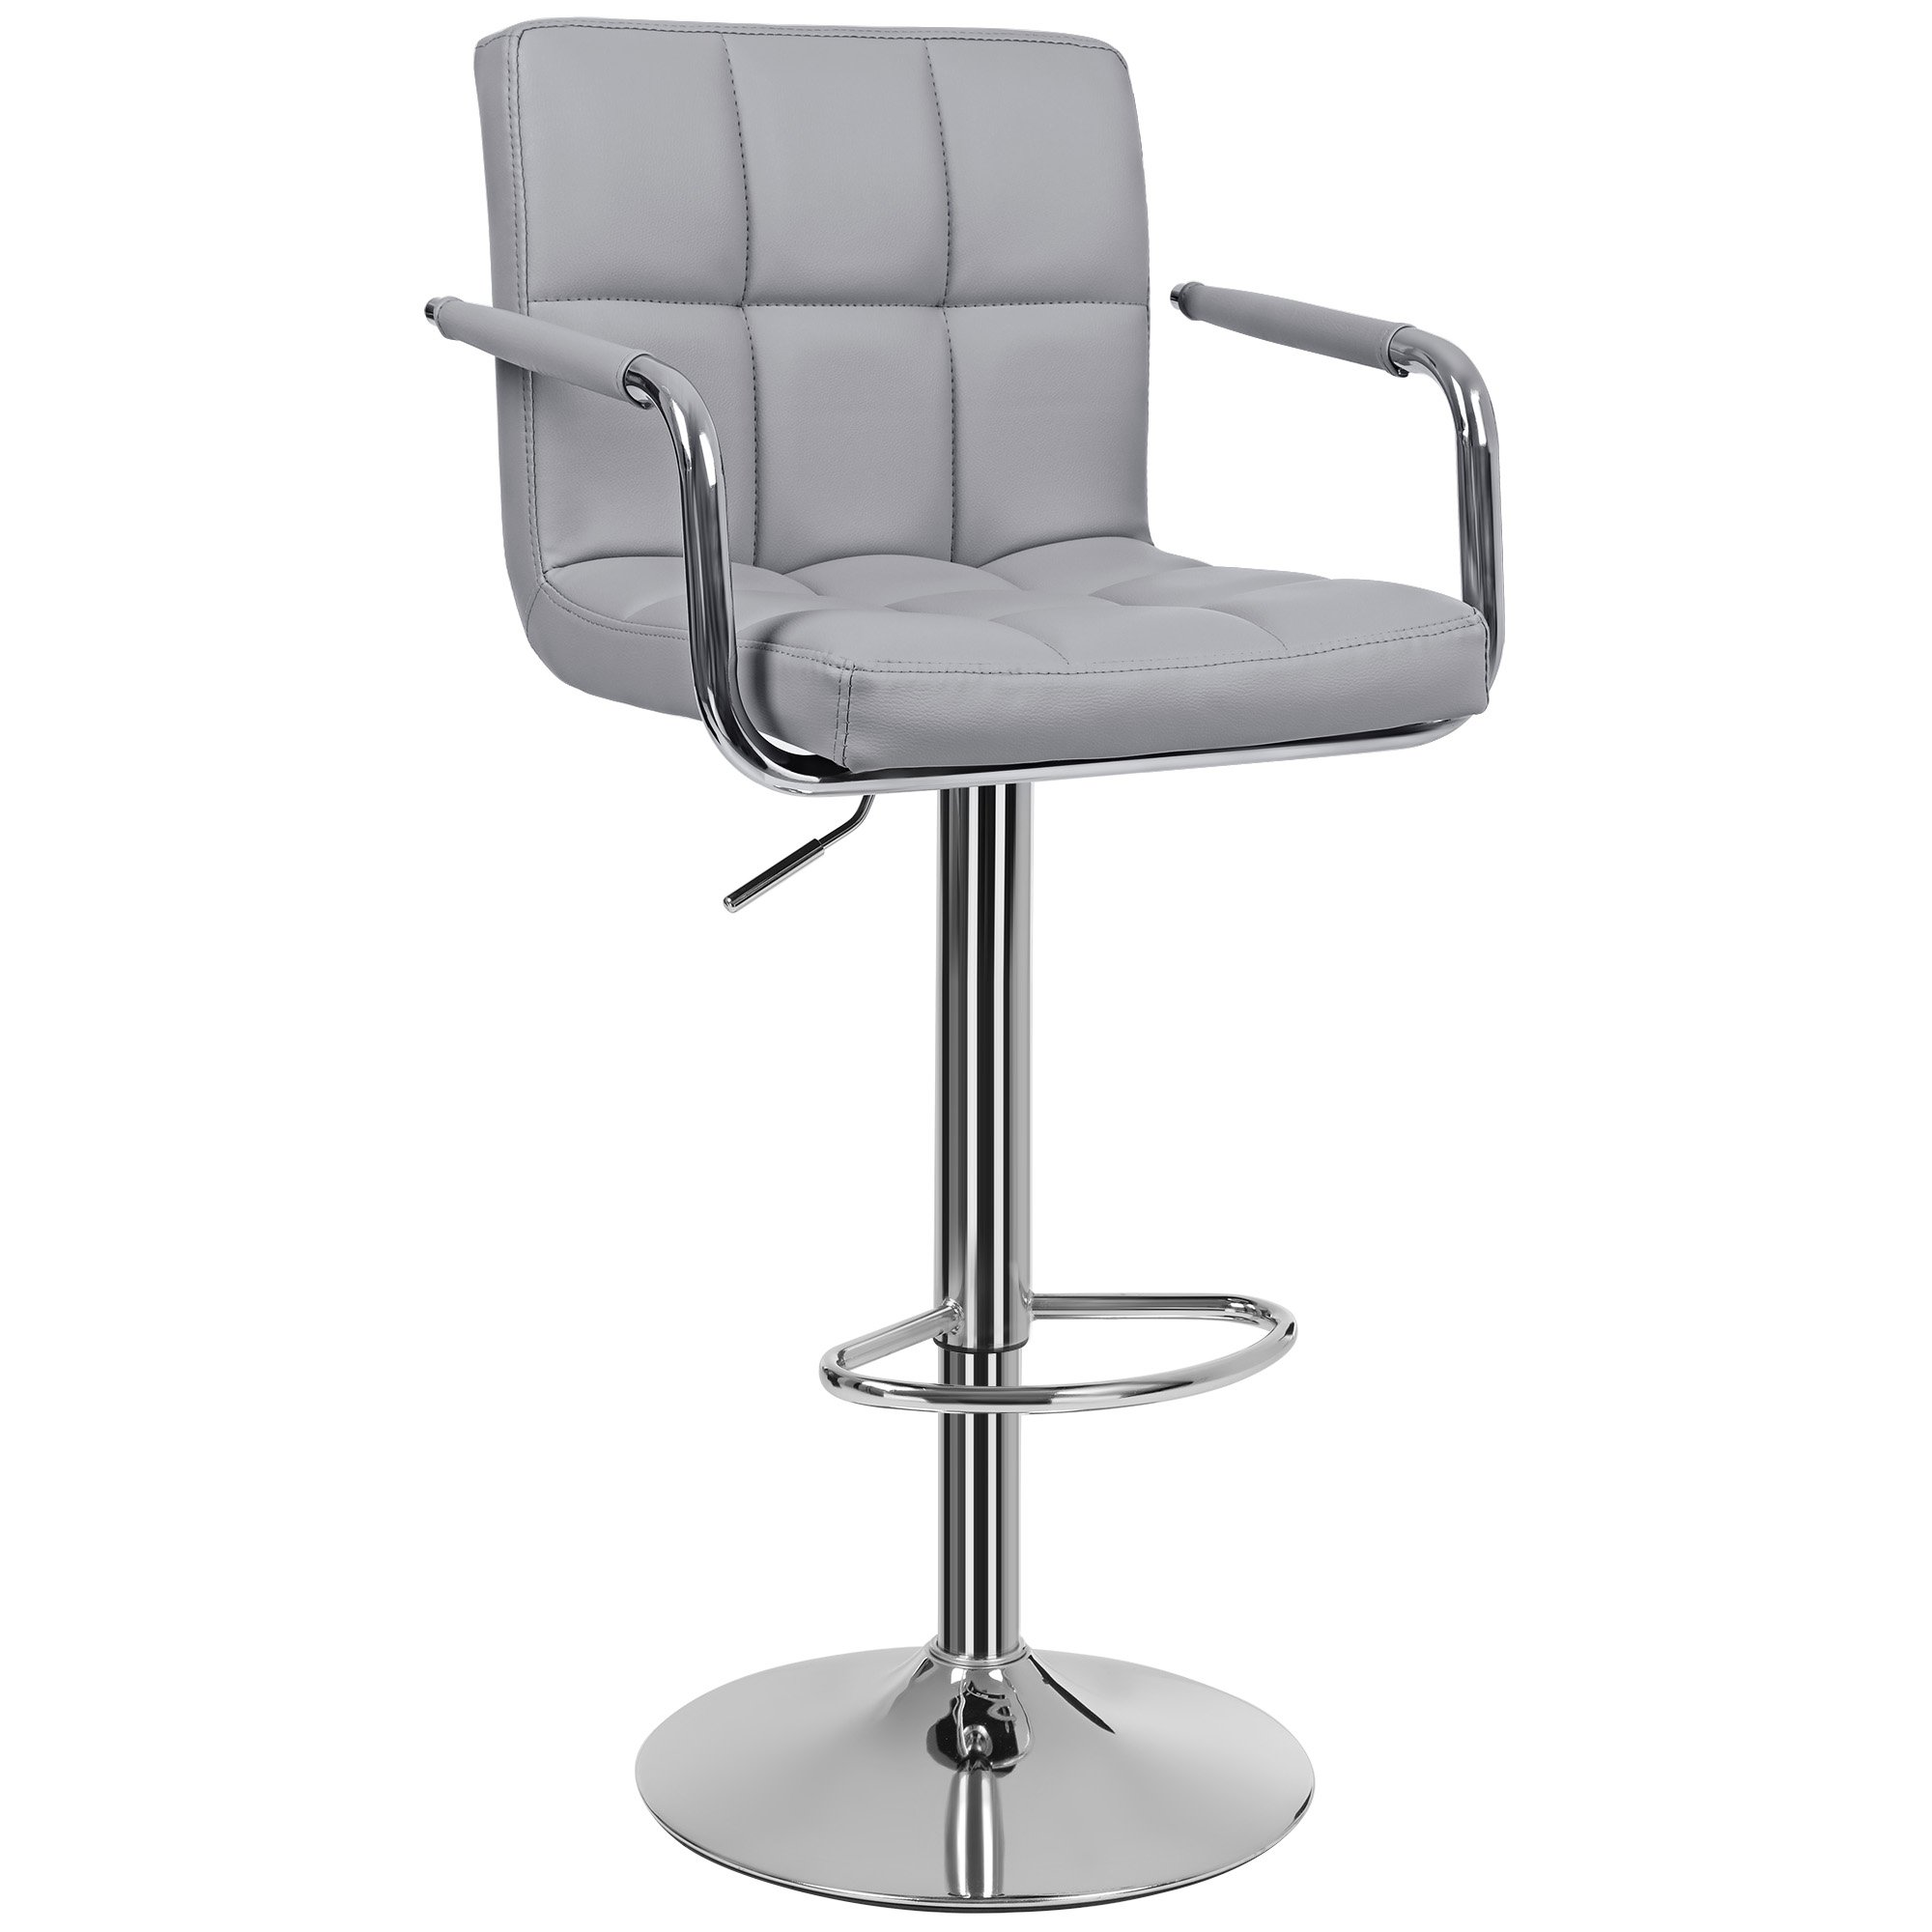 Grey Bar Stool: Amazon.co.uk